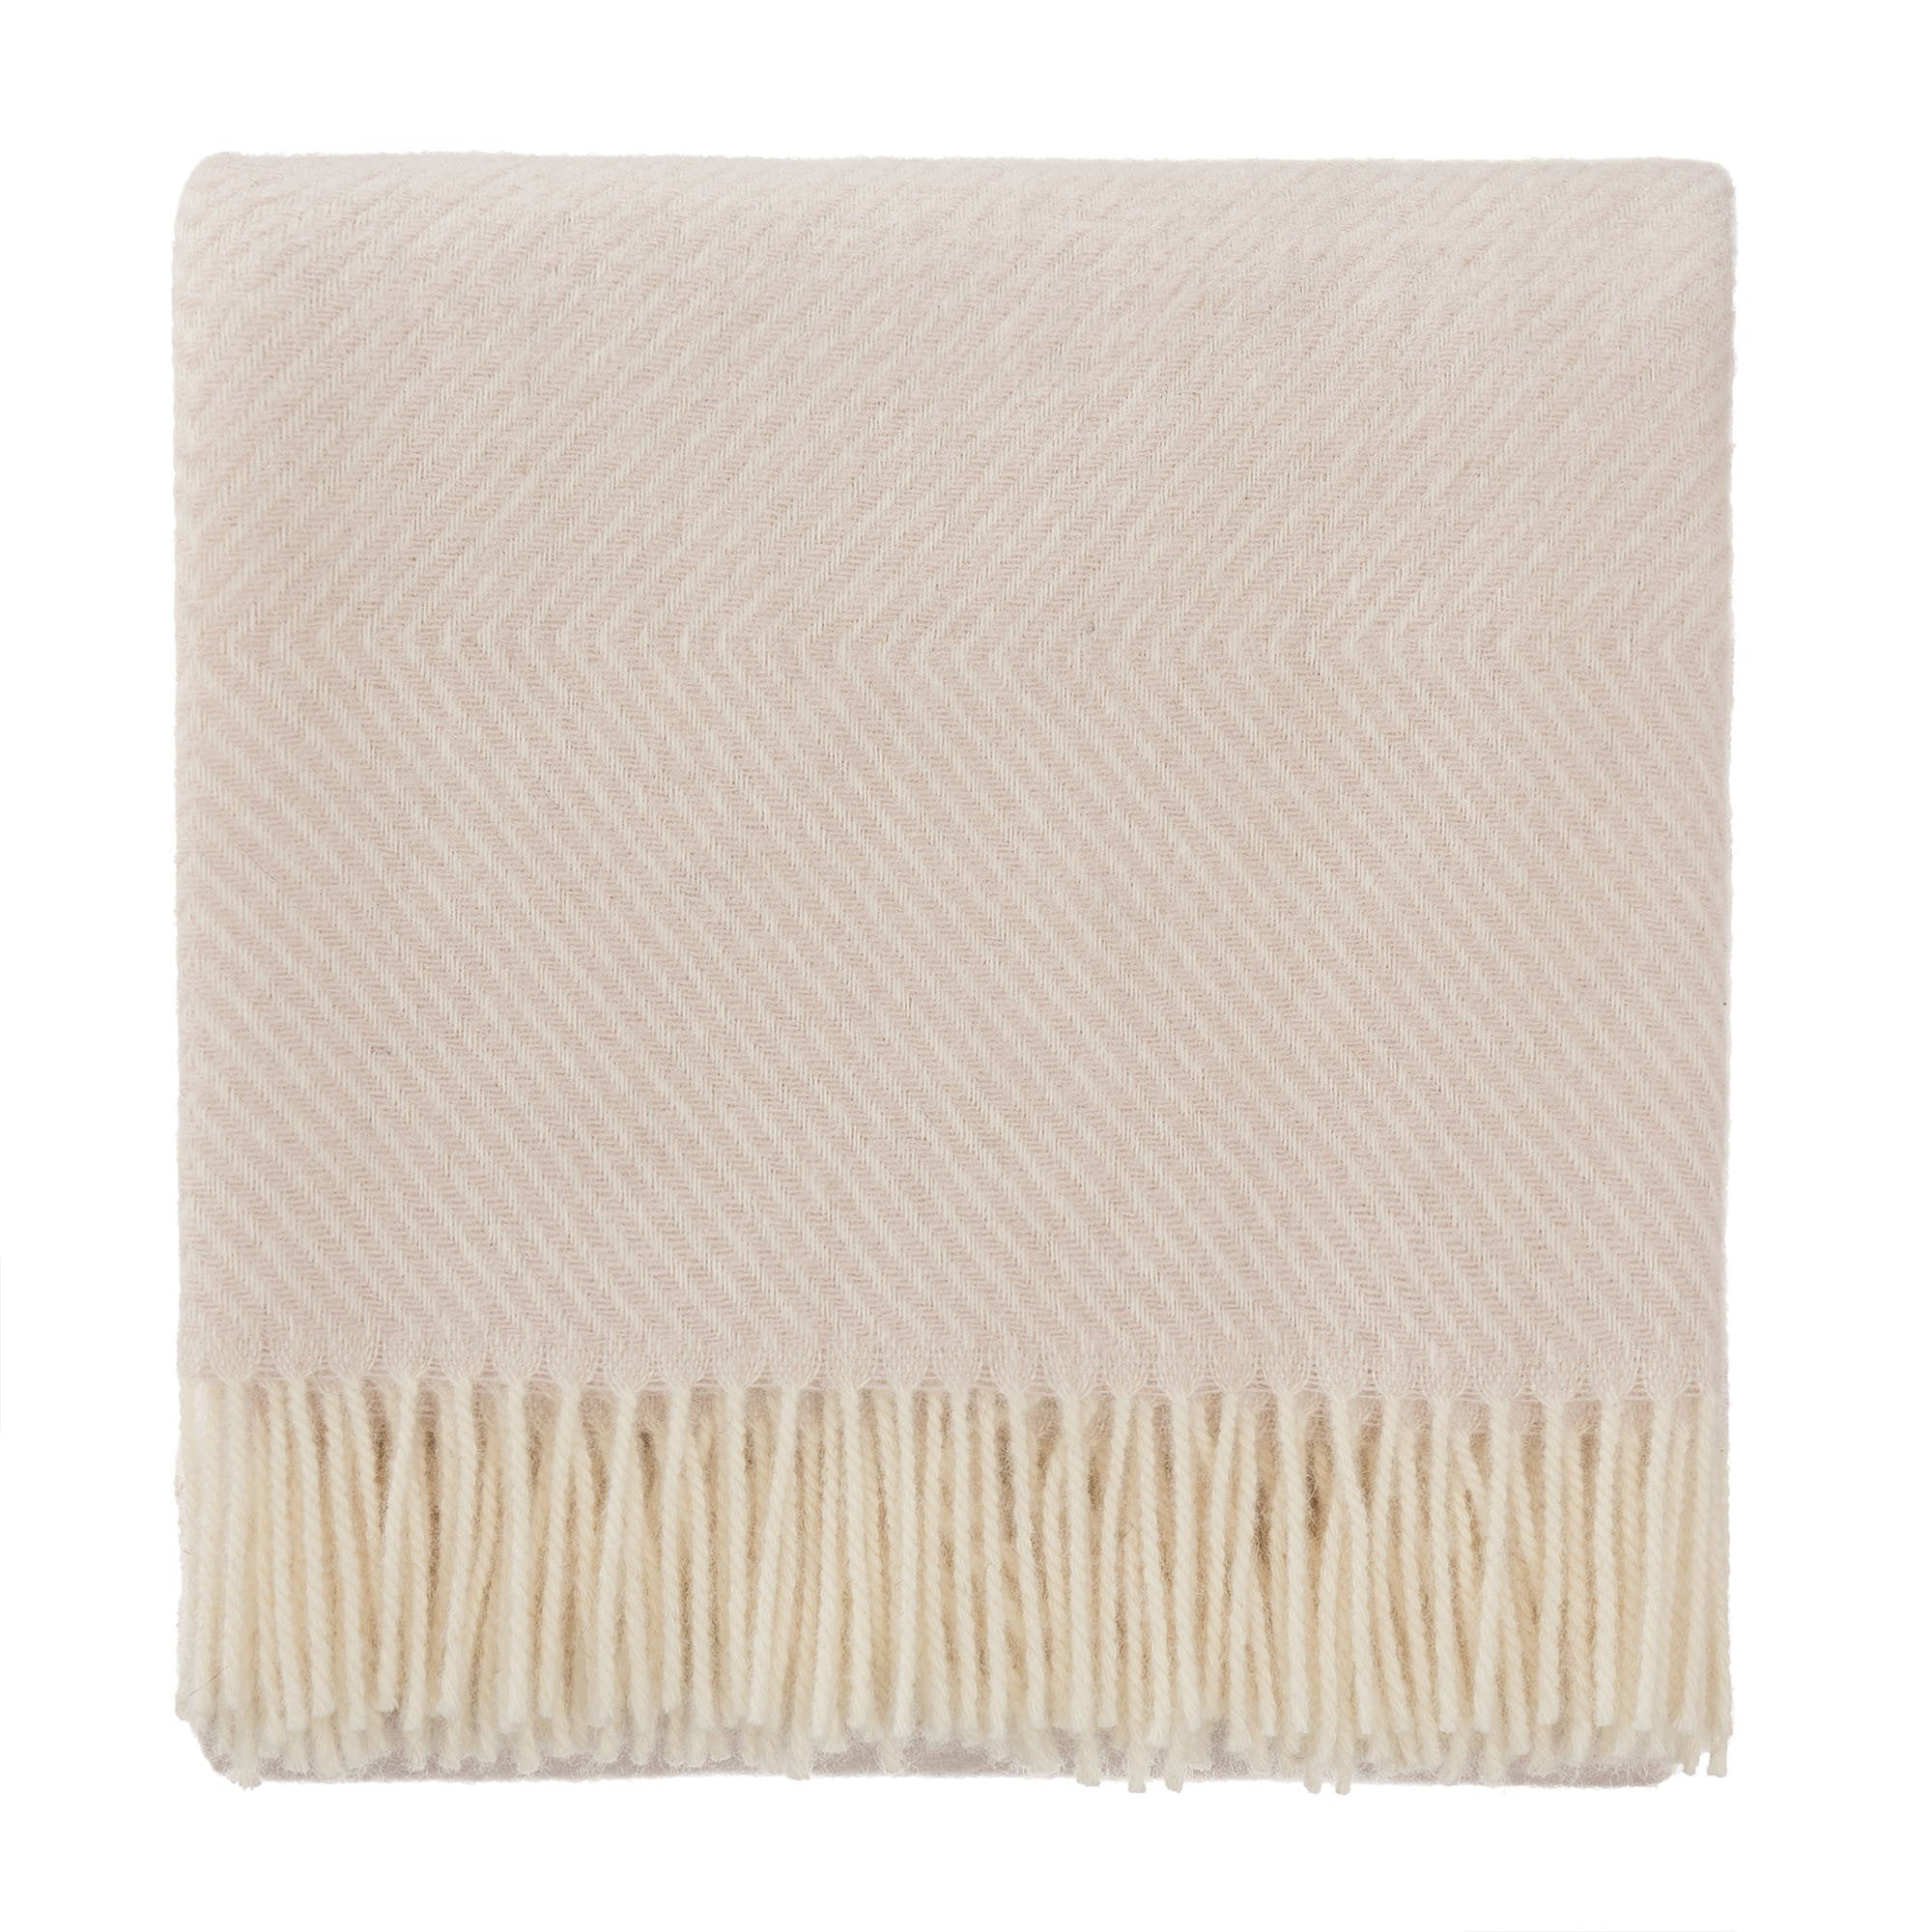 Gotland Wool Blanket [Powder Pink/Cream]